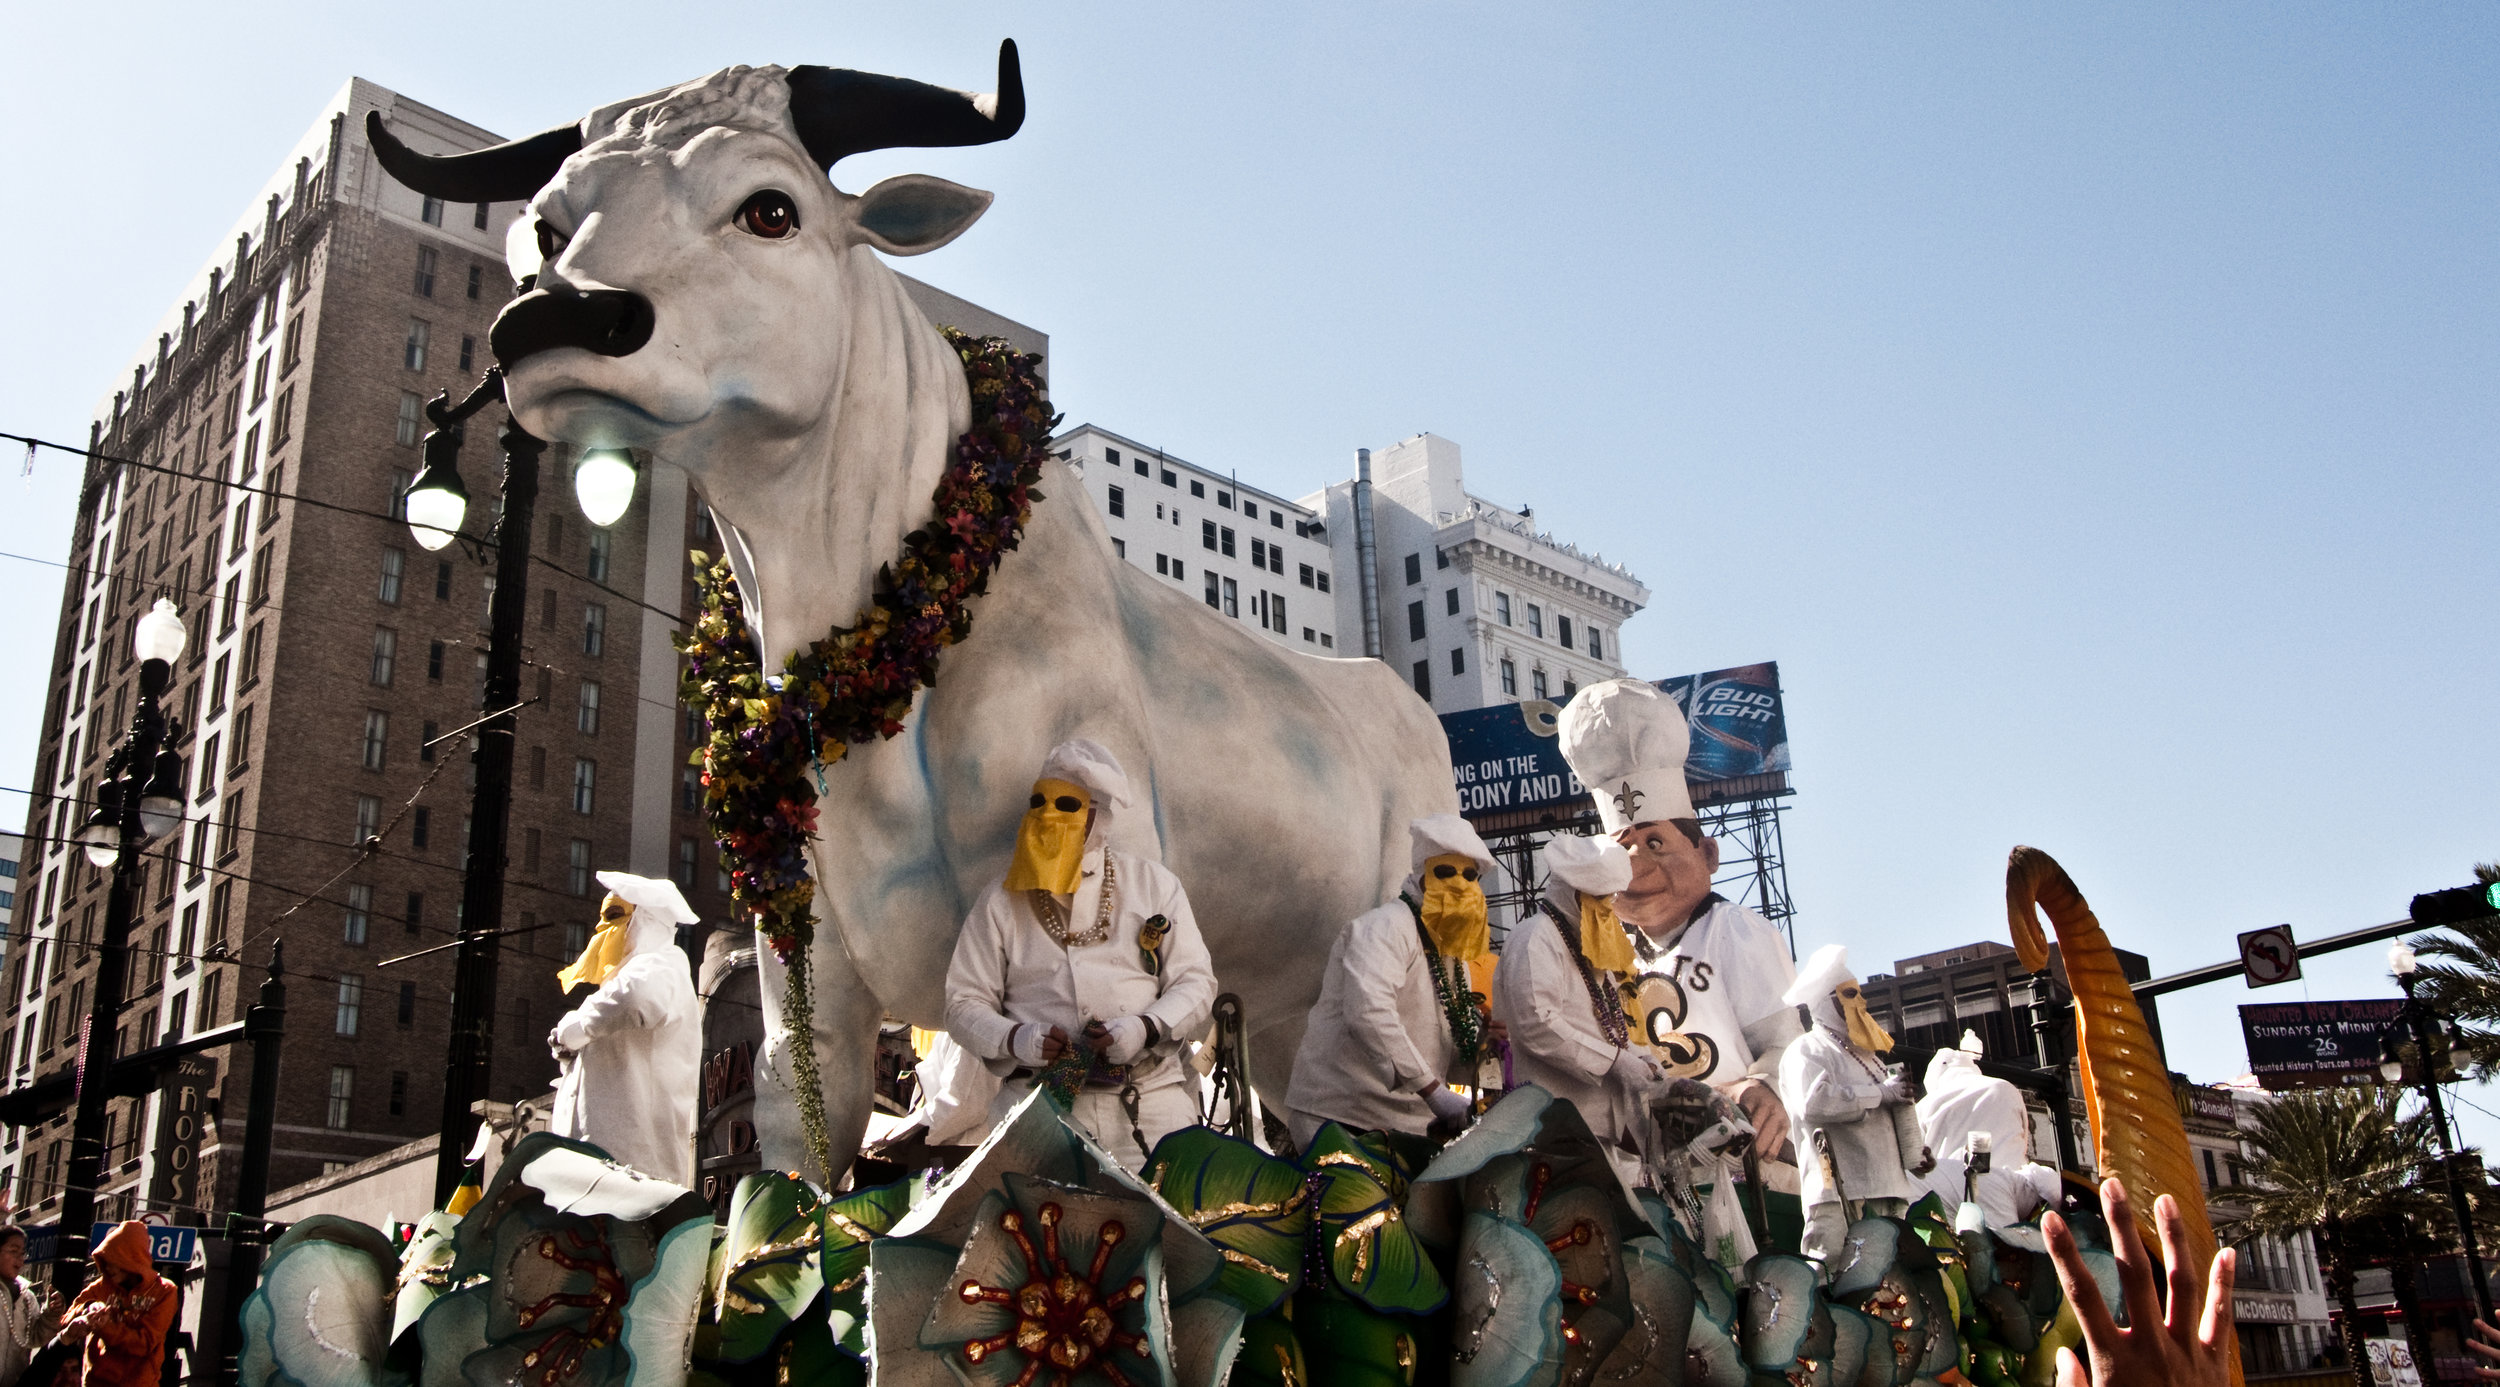 Rex, one of the oldest Mardi Gras krewes, rolls its iconic Boeuf Gras float down Canal Street on a recent Fat Tuesday.